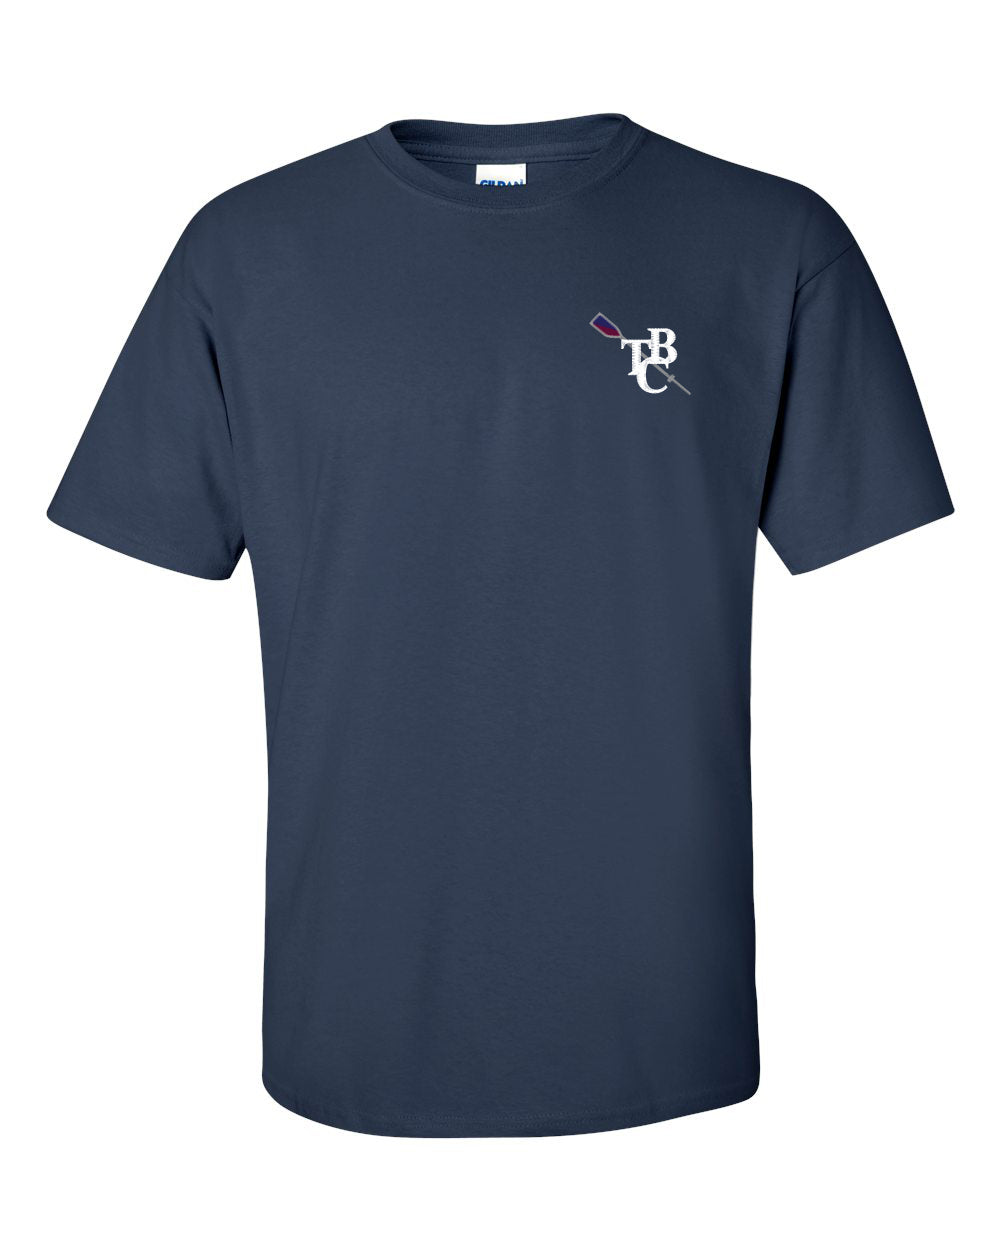 100% Cotton TBC Men's Team Spirit T-Shirt